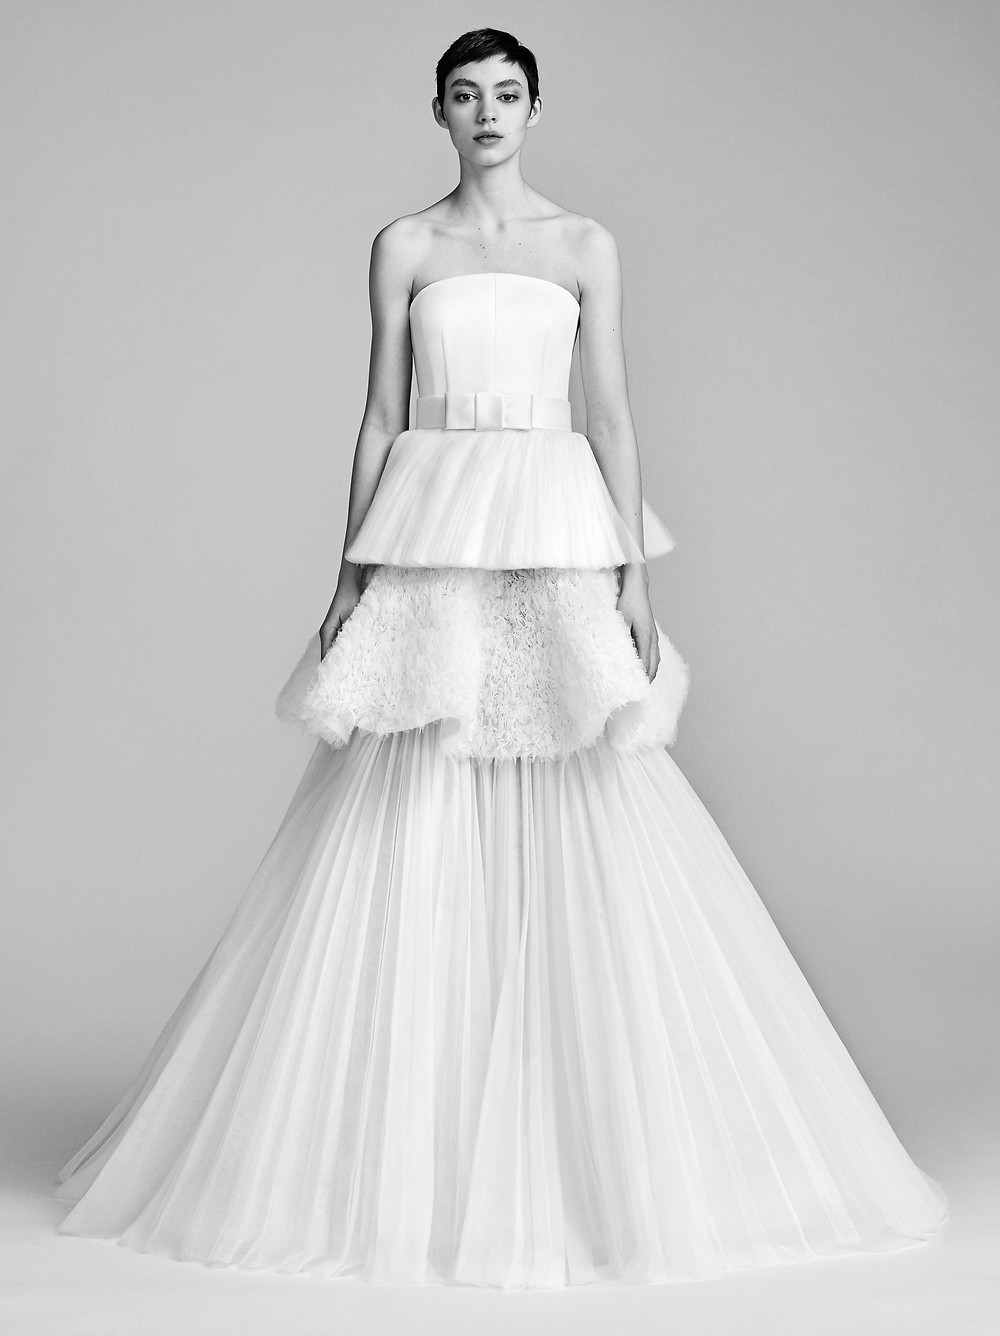 A Viktor & Rolf strapless ball gown wedding dress with a layered tulle skirt